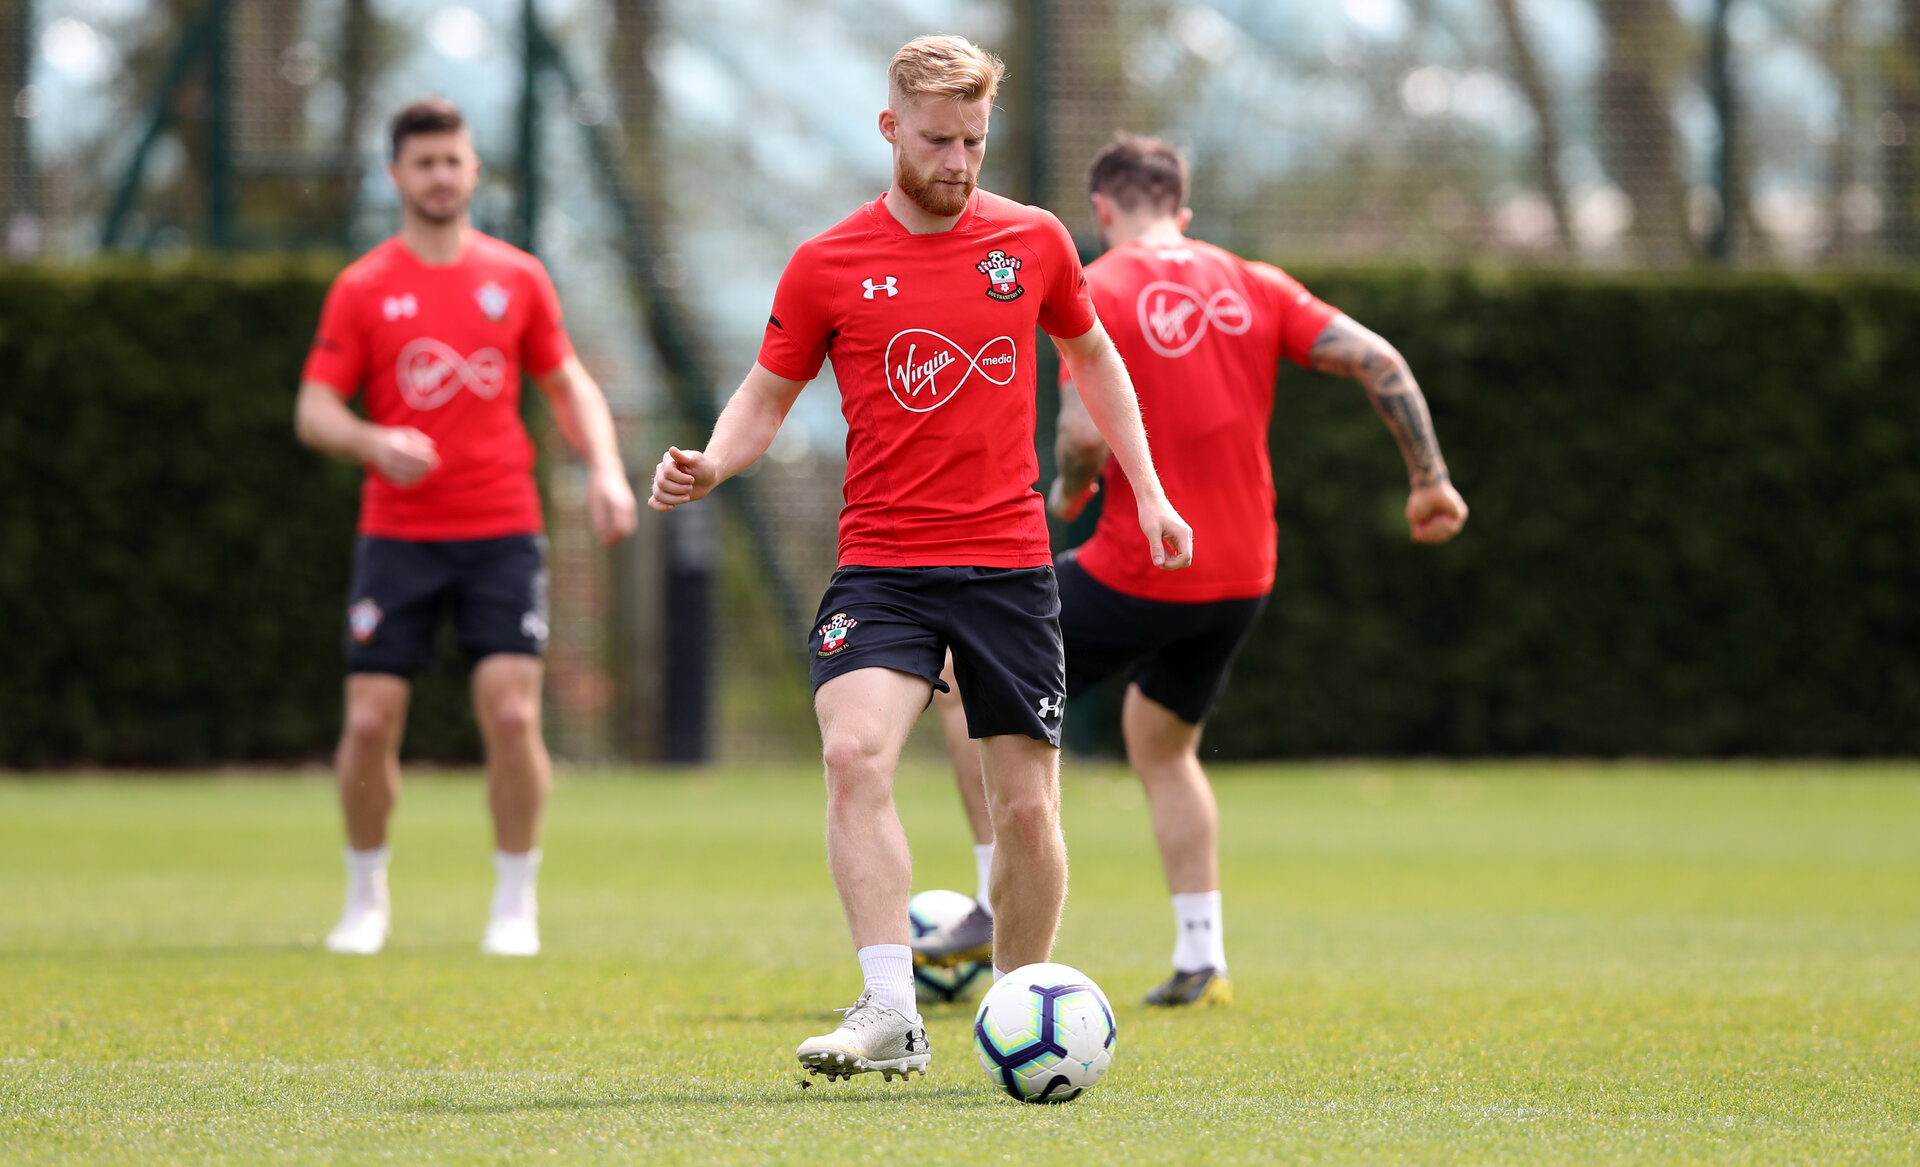 SOUTHAMPTON, ENGLAND - APRIL 18: Josh Sims during a Southampton FC training session at the Staplewood Campus on April 18, 2019 in Southampton, England. (Photo by Matt Watson/Southampton FC via Getty Images)